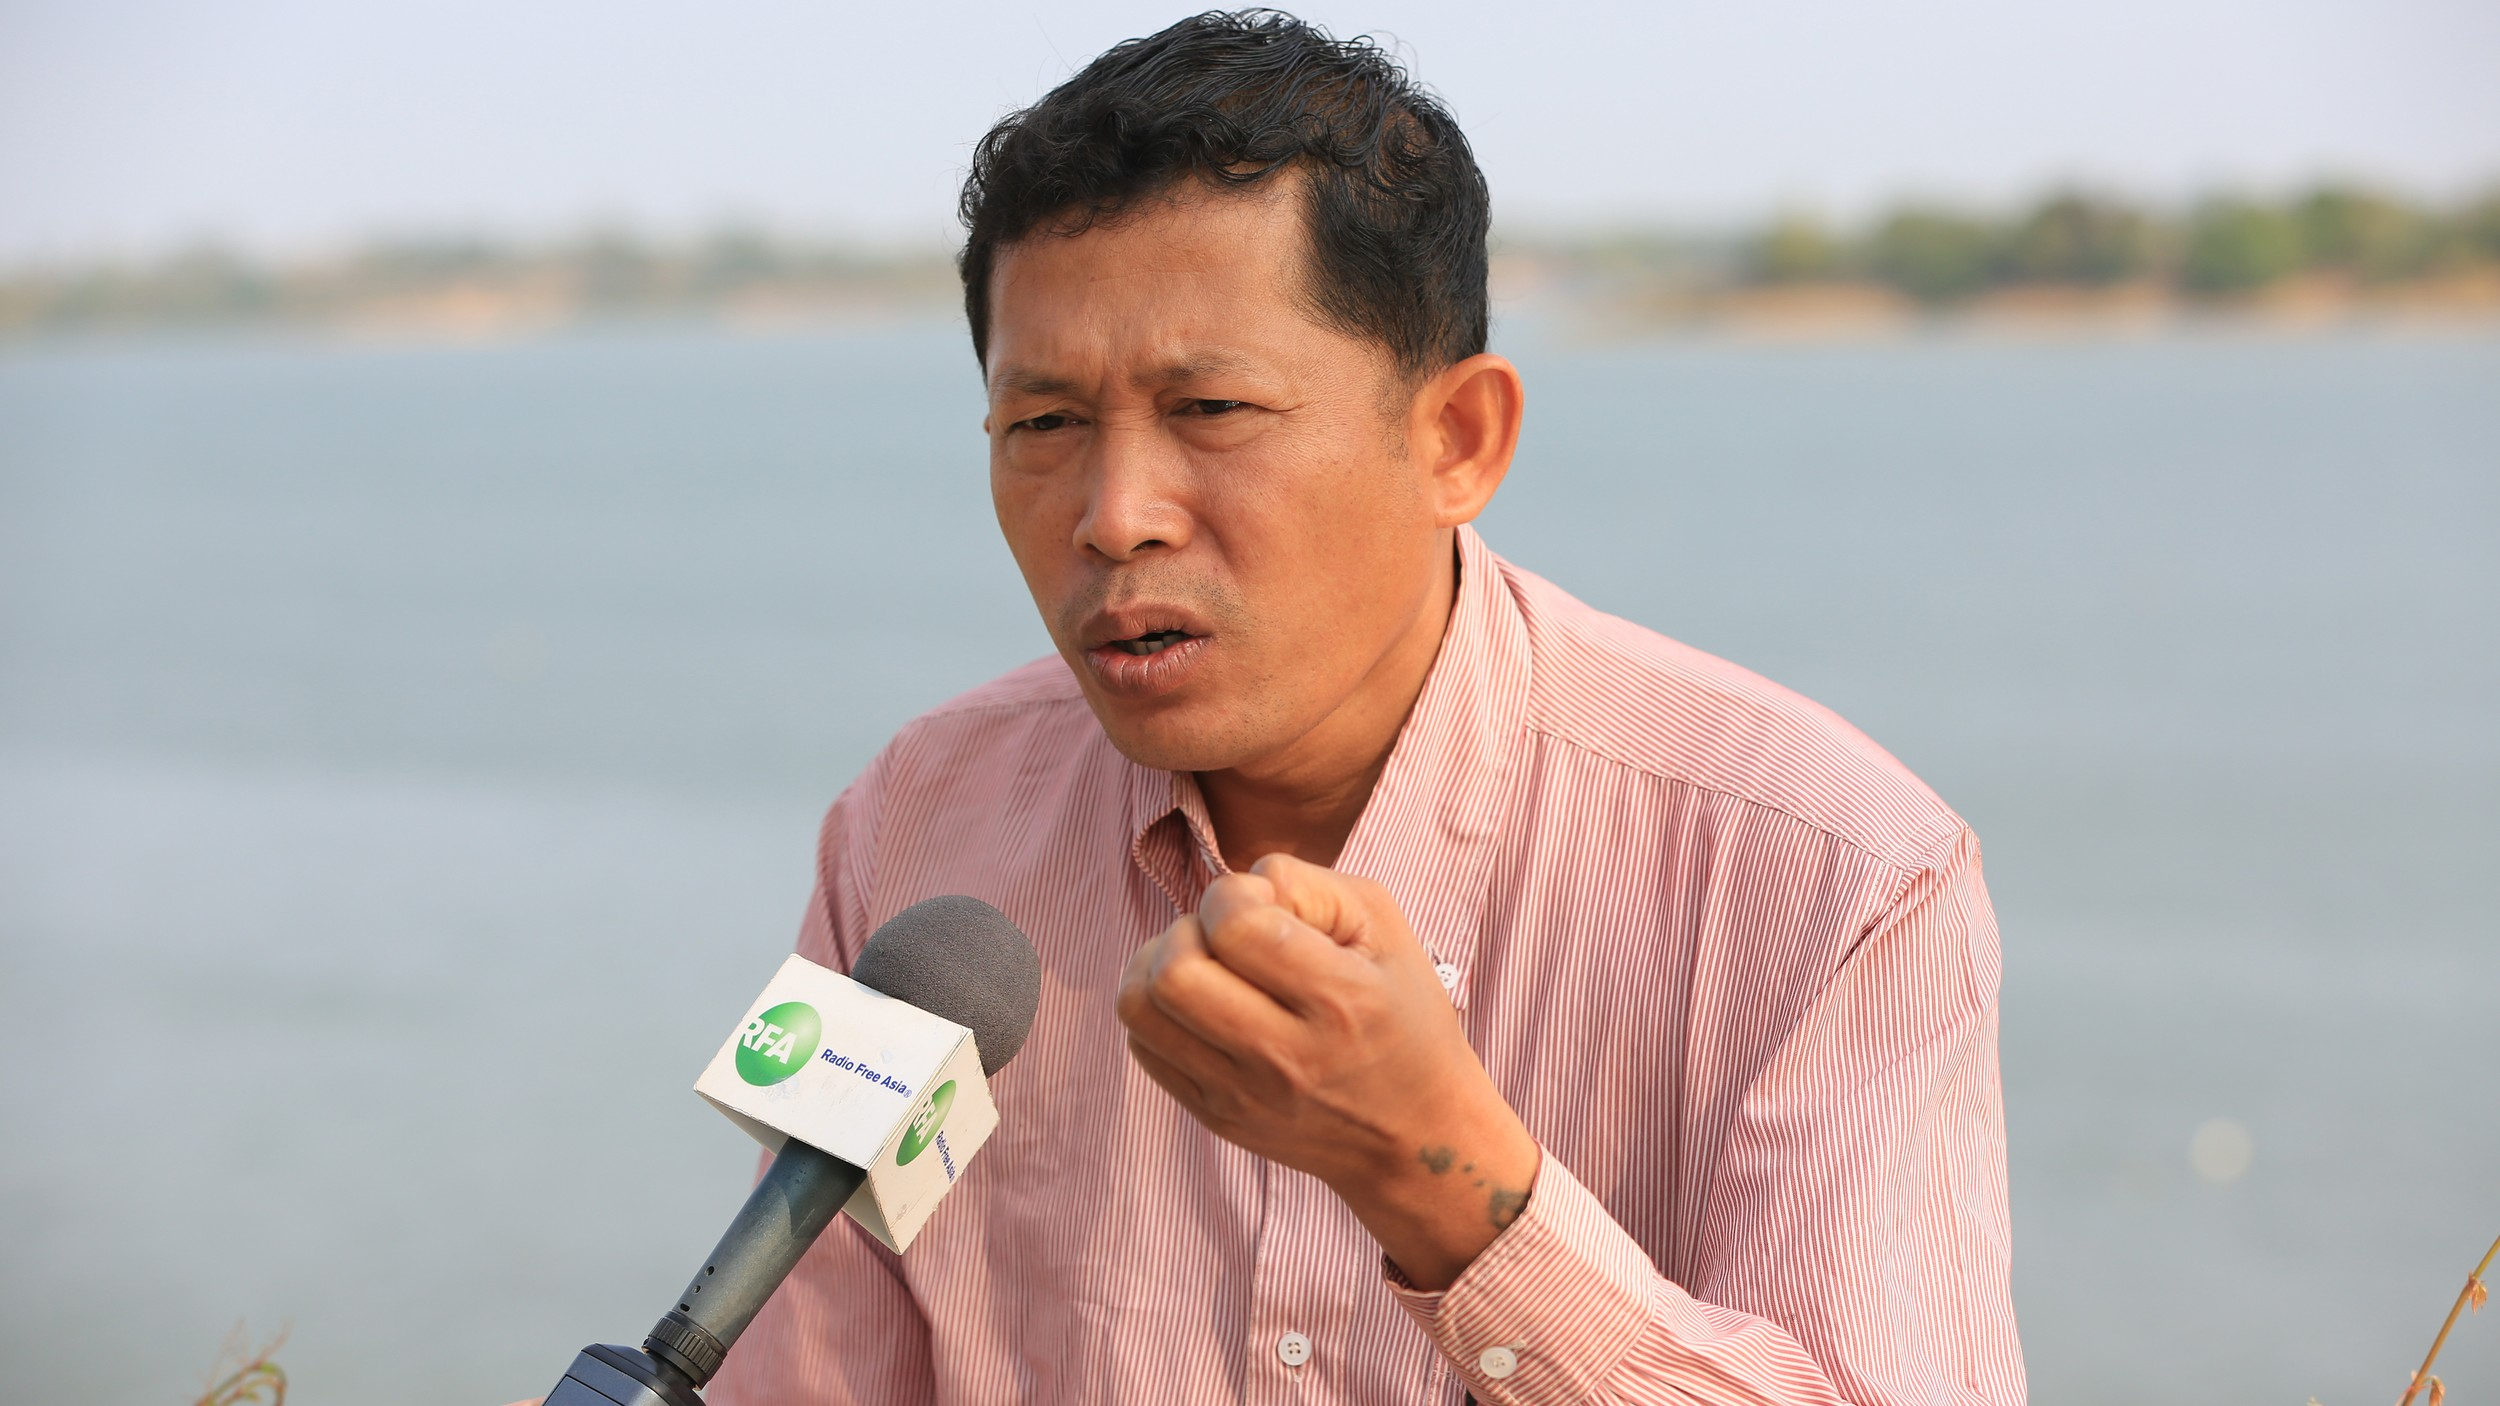 Siek Mekong speaks to RFA's Khmer Service during an interview in Steung Treng province, March 26, 2016.